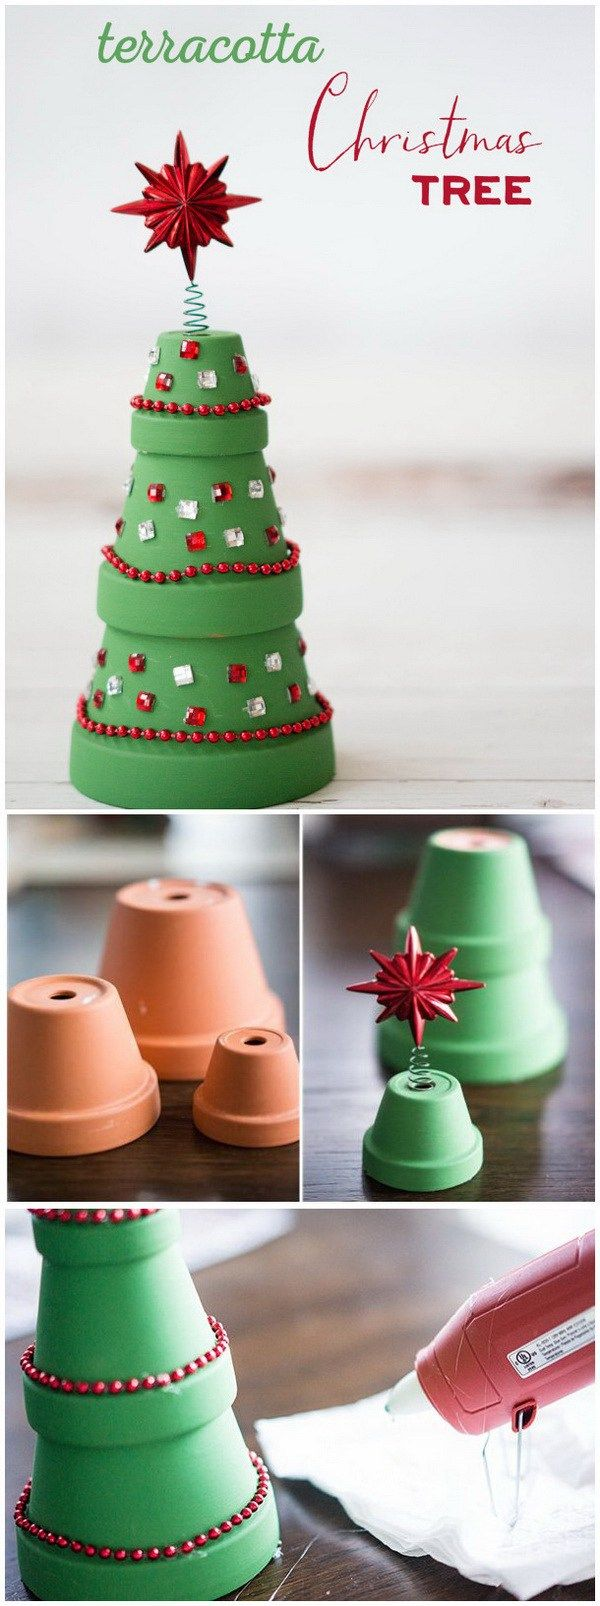 Terracotta Christmas Tree. This terra cotta pots Christmas tree is so adorable and so easy to make and perfect for decorating indoors or out this holiday season. It is a great holiday craft to get your kids involved in!